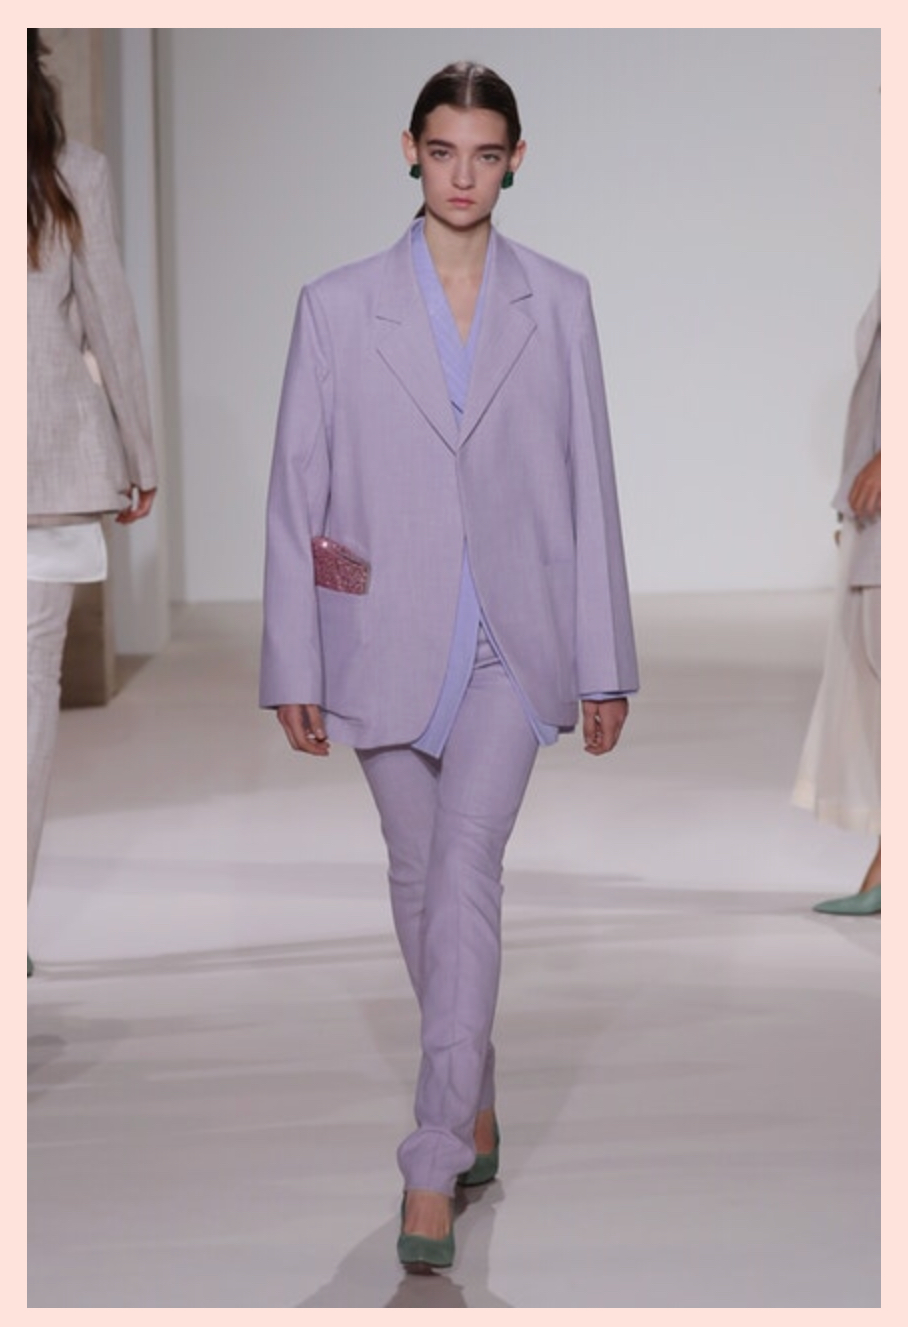 Wanna be on trend, mom? Nylon says go with pastels, menswear, or both!